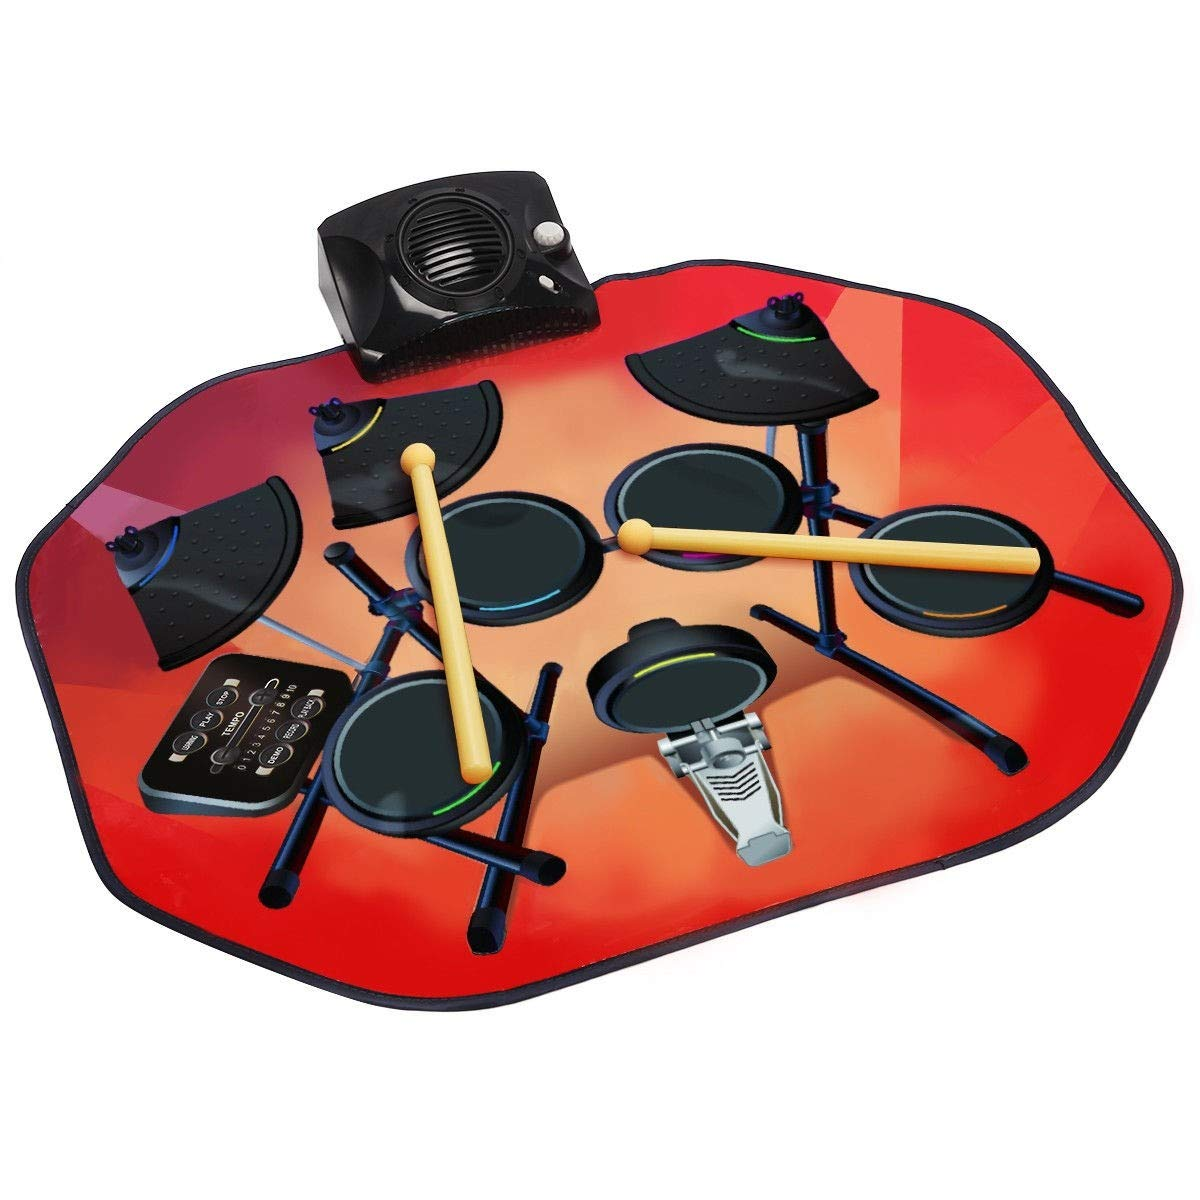 Movable Electronic Roll-up Drum Pad Home Toys & Games Toy Musical Instruments & Gear Percussion Drum Electronic Drums Equipment, Appliance, House, Music, Tool, Knock, Indoor, Portable, Moveable by Lek Store